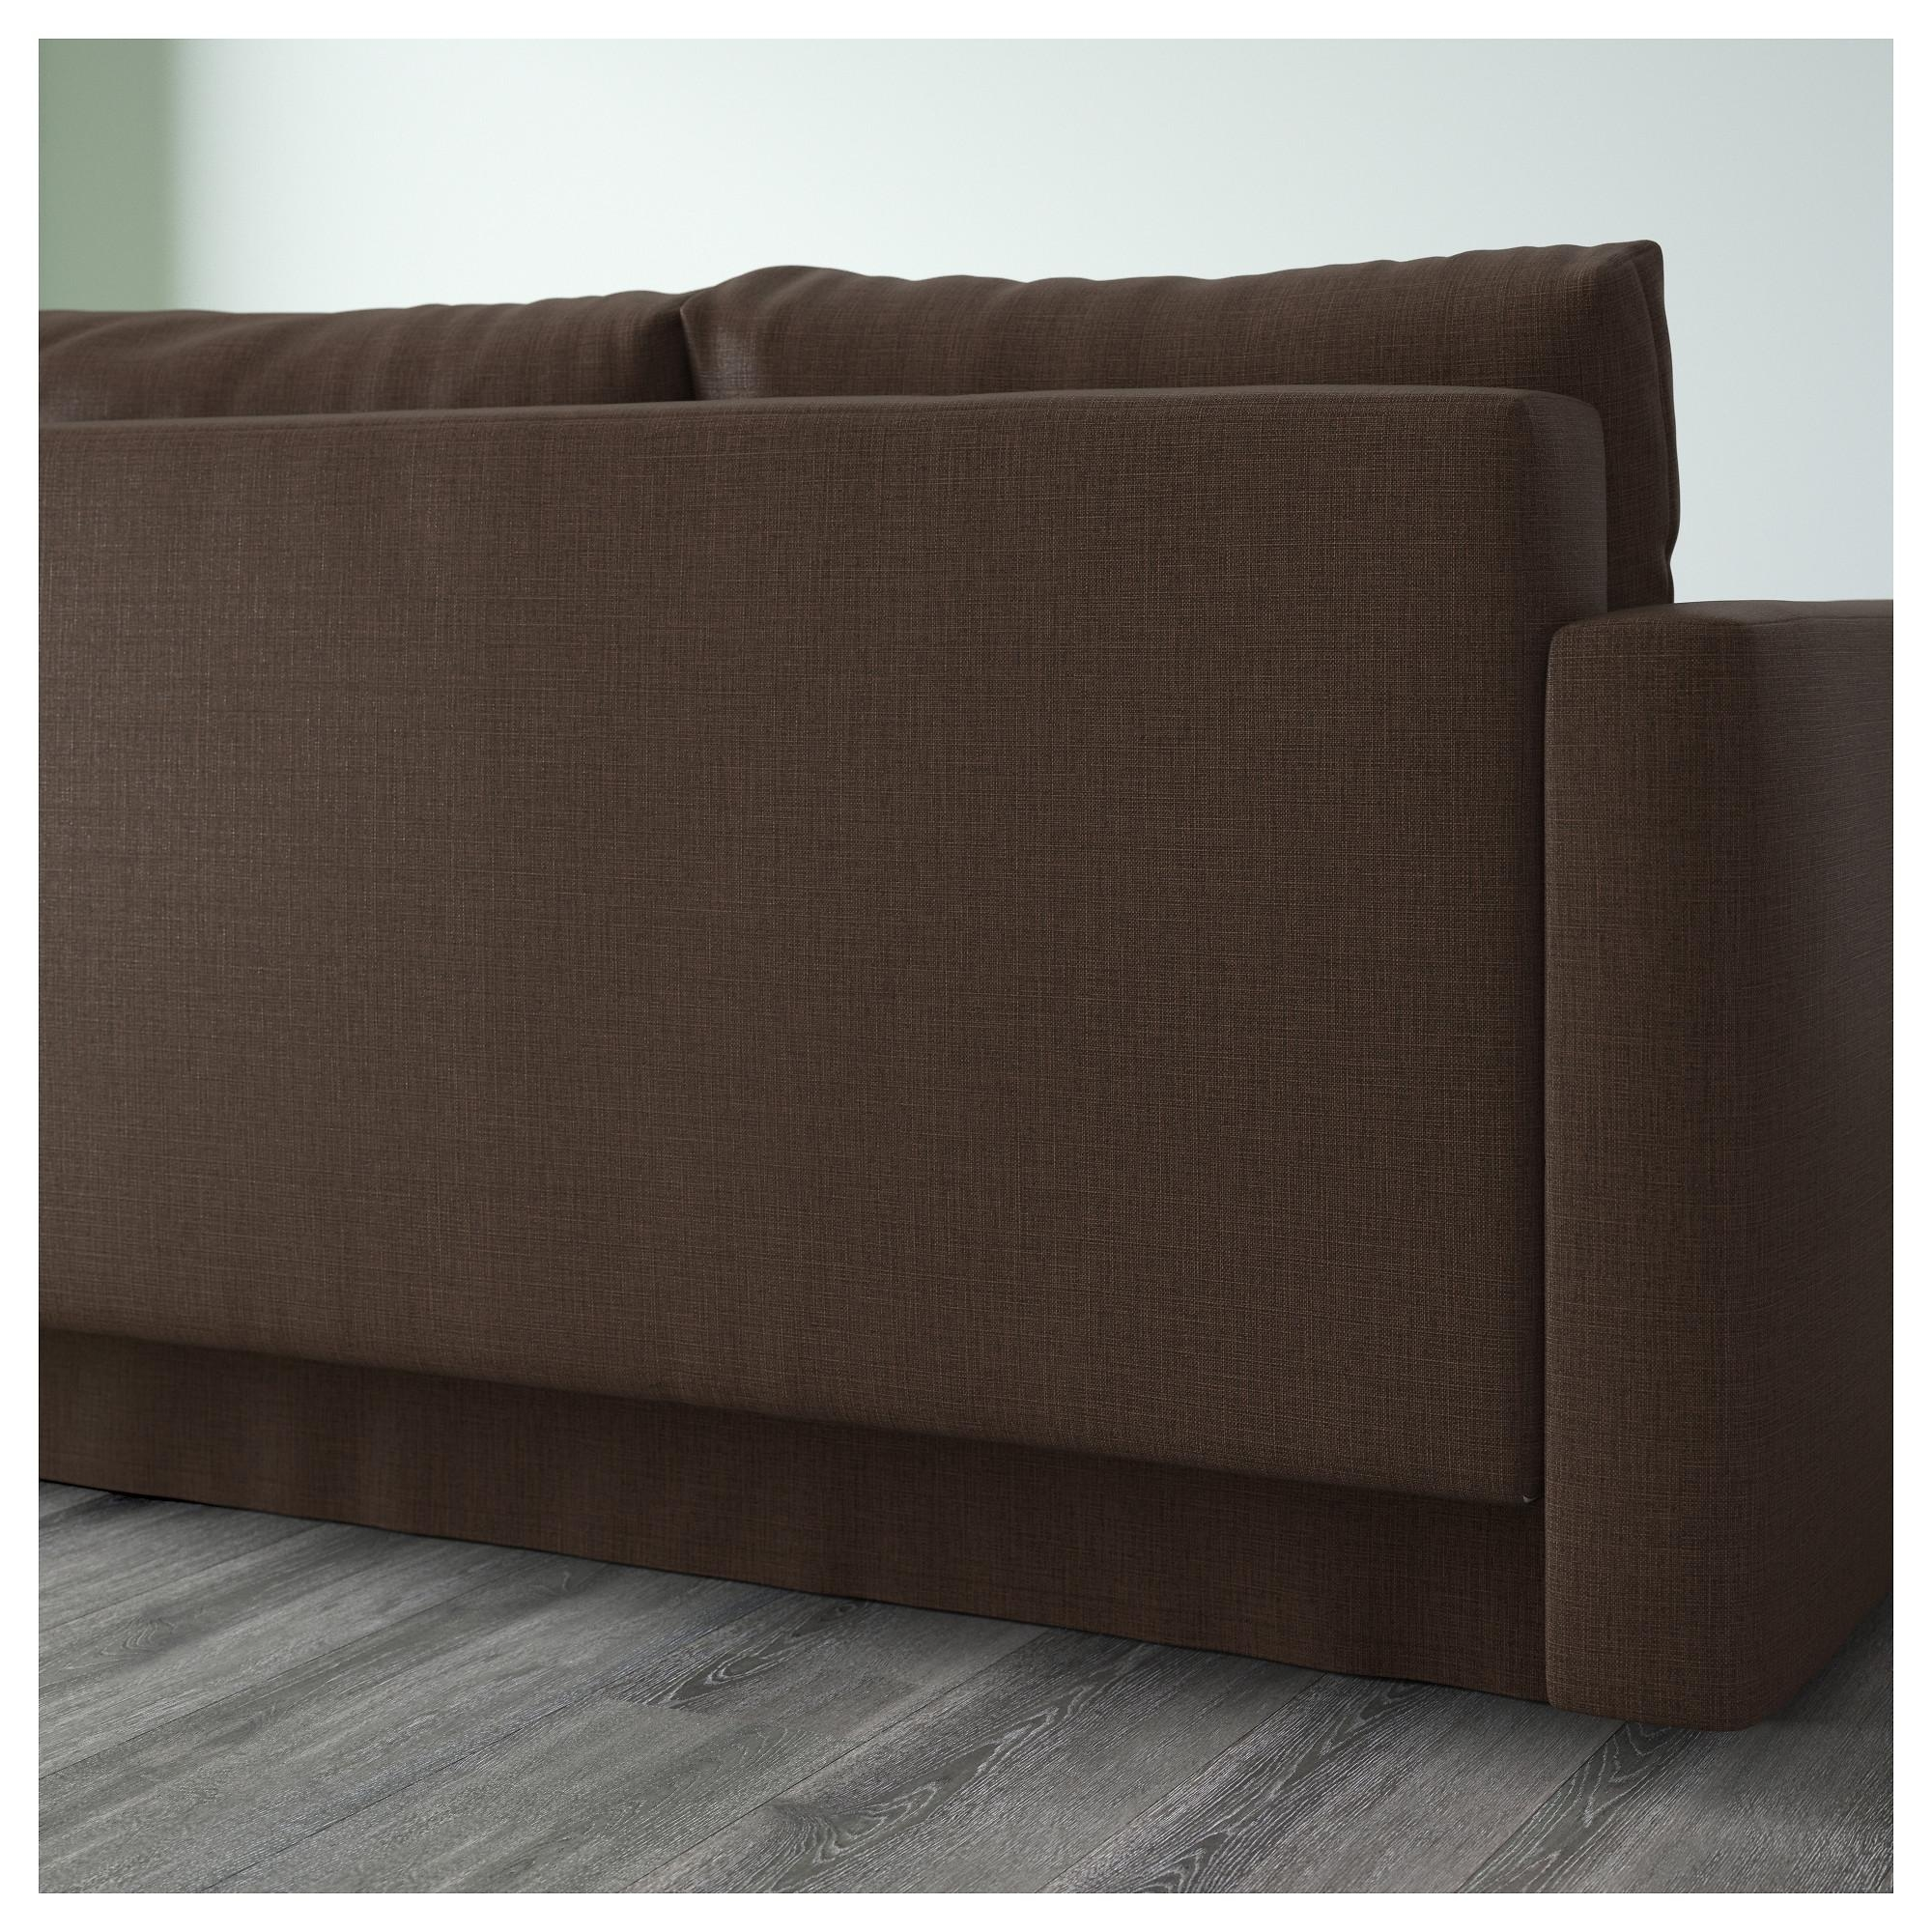 Friheten Corner Sofa Bed With Storage Skiftebo Brown – Ikea With Storage Sofas Ikea (View 16 of 20)